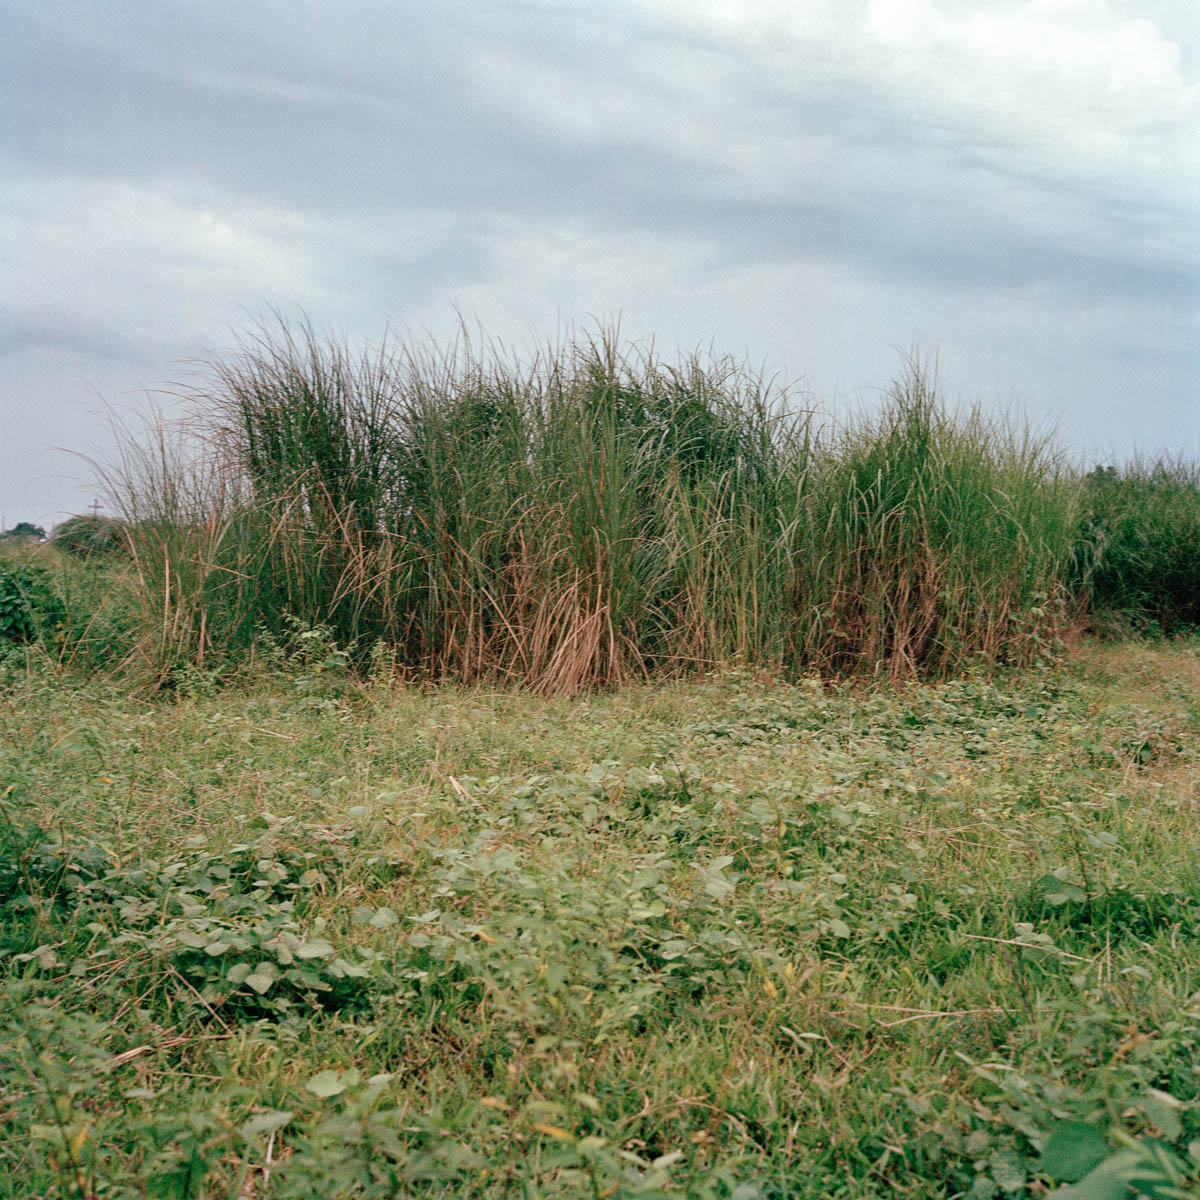 """Wild grass - Wild grass at dusk near barangay Cutud Northville. Angeles City, Philippines, August 2014. - Copyright © © S. Borcard - N. Metraux - Angeles - Central Luzon - Philippines - <A href=""""https://maps.google.com/?ll=15.168055,120.586388&z=16"""" target=""""_blank"""">(Map Wild grass)</A>"""